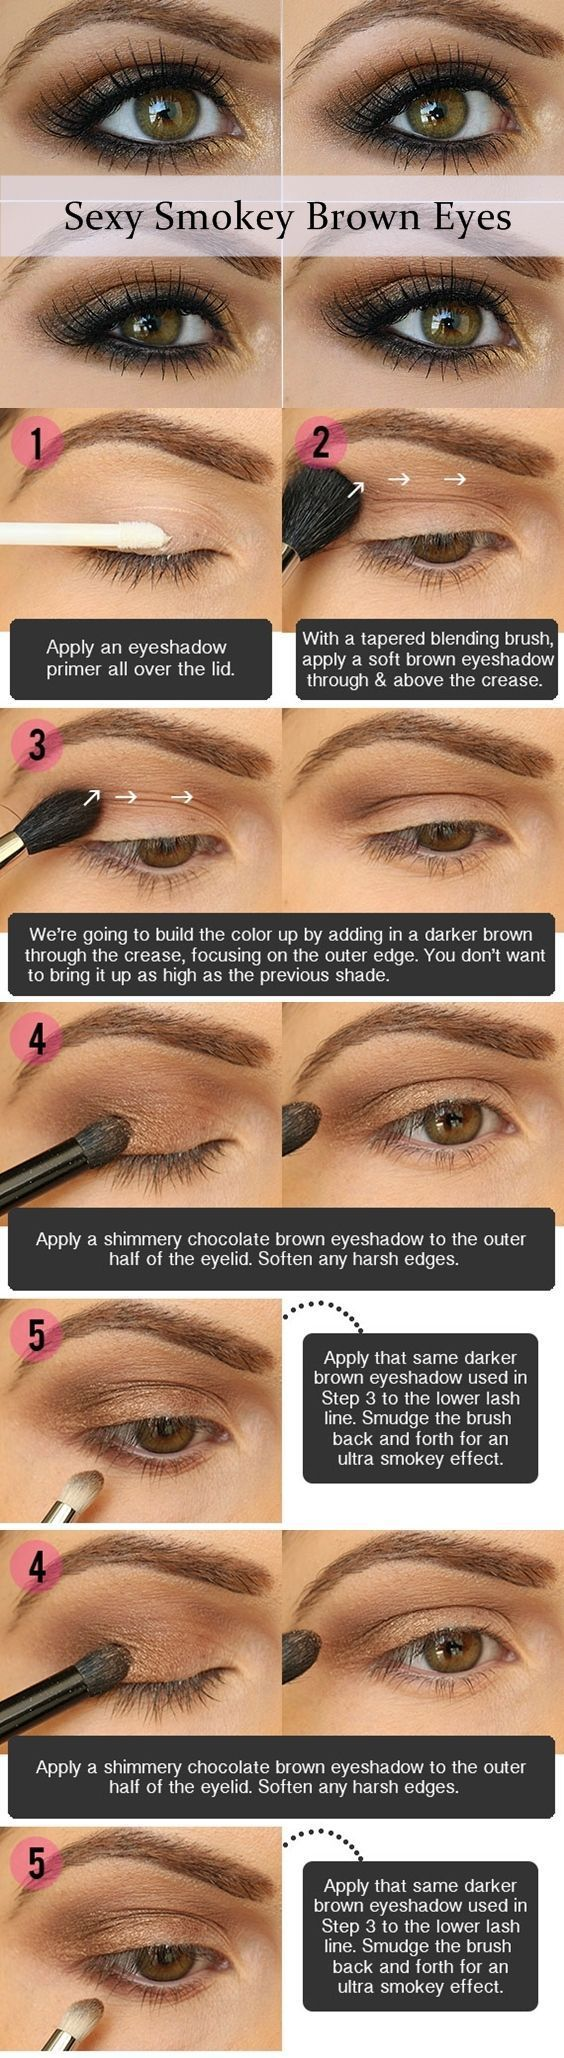 How to apply smokey eyes makeup step by step